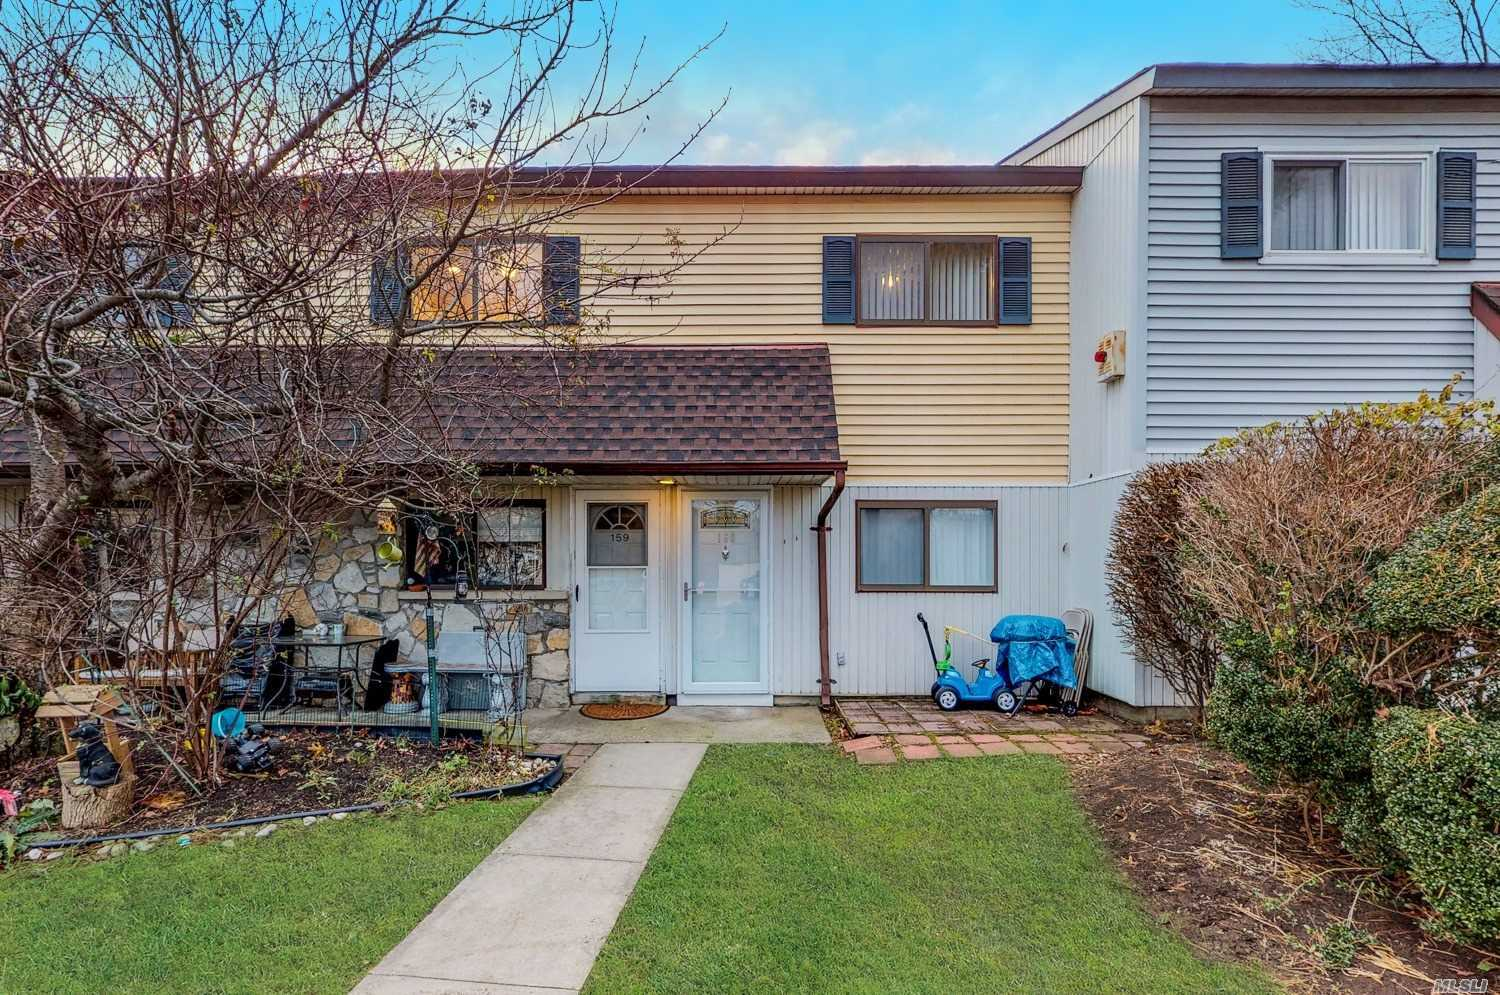 Beautifully Updated Second Floor Unit In Prime Location With Fresh Paint And Carpet Throughout. Tastefully Appointed Baths And Updated Kitchen With Stone Countertops, Tile Backsplash, And Stainless Steel Undermount Sink.